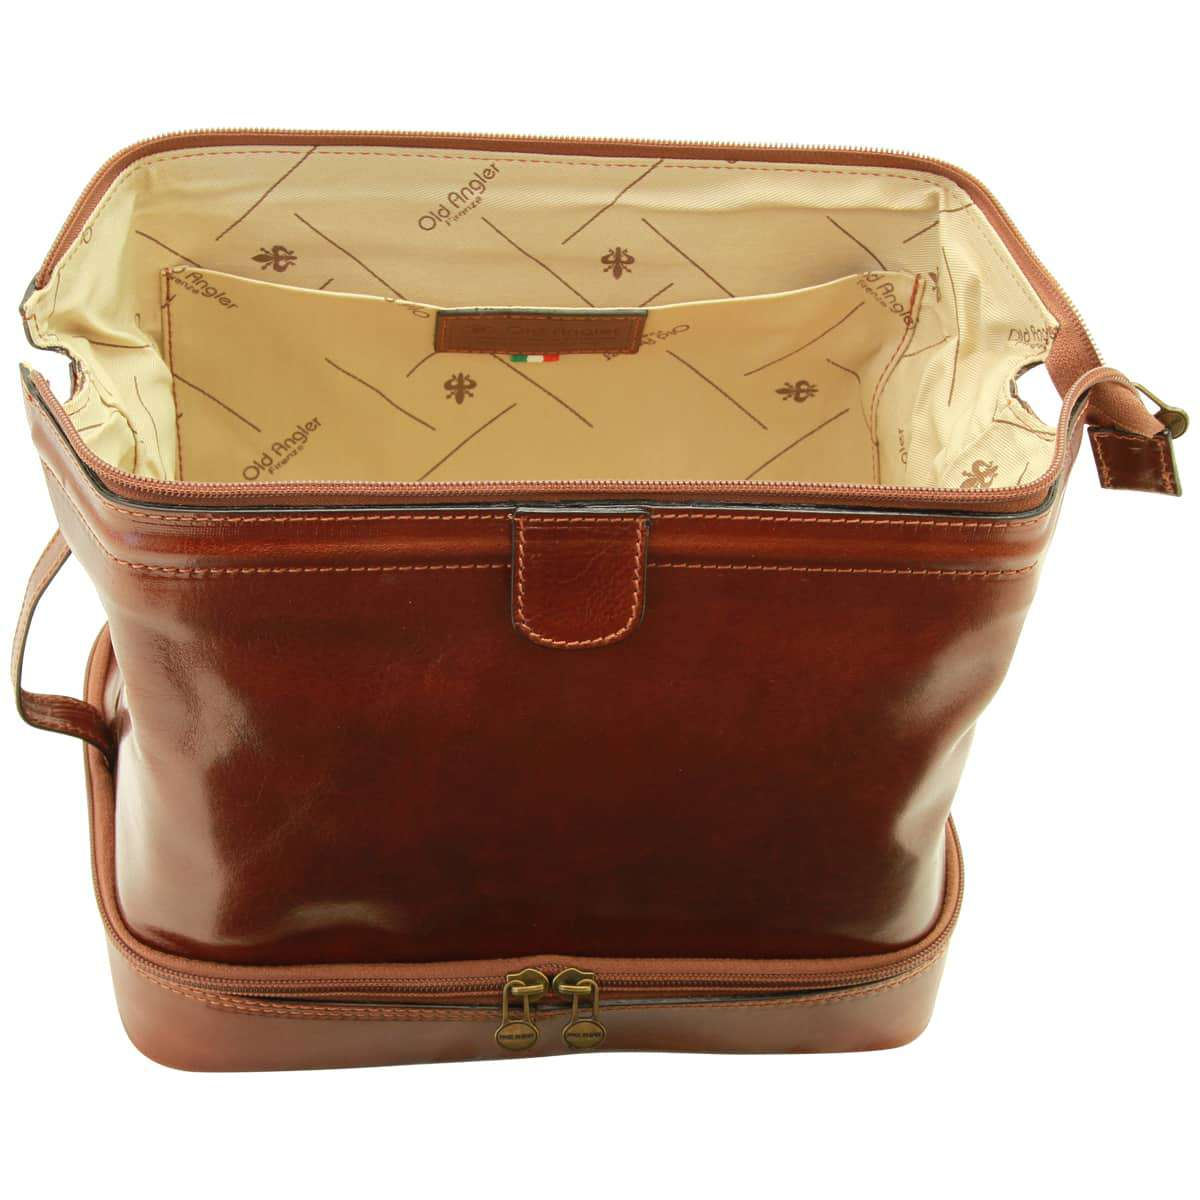 Cowhide leather travel kit - Brown | 066205MA UK | Old Angler Firenze